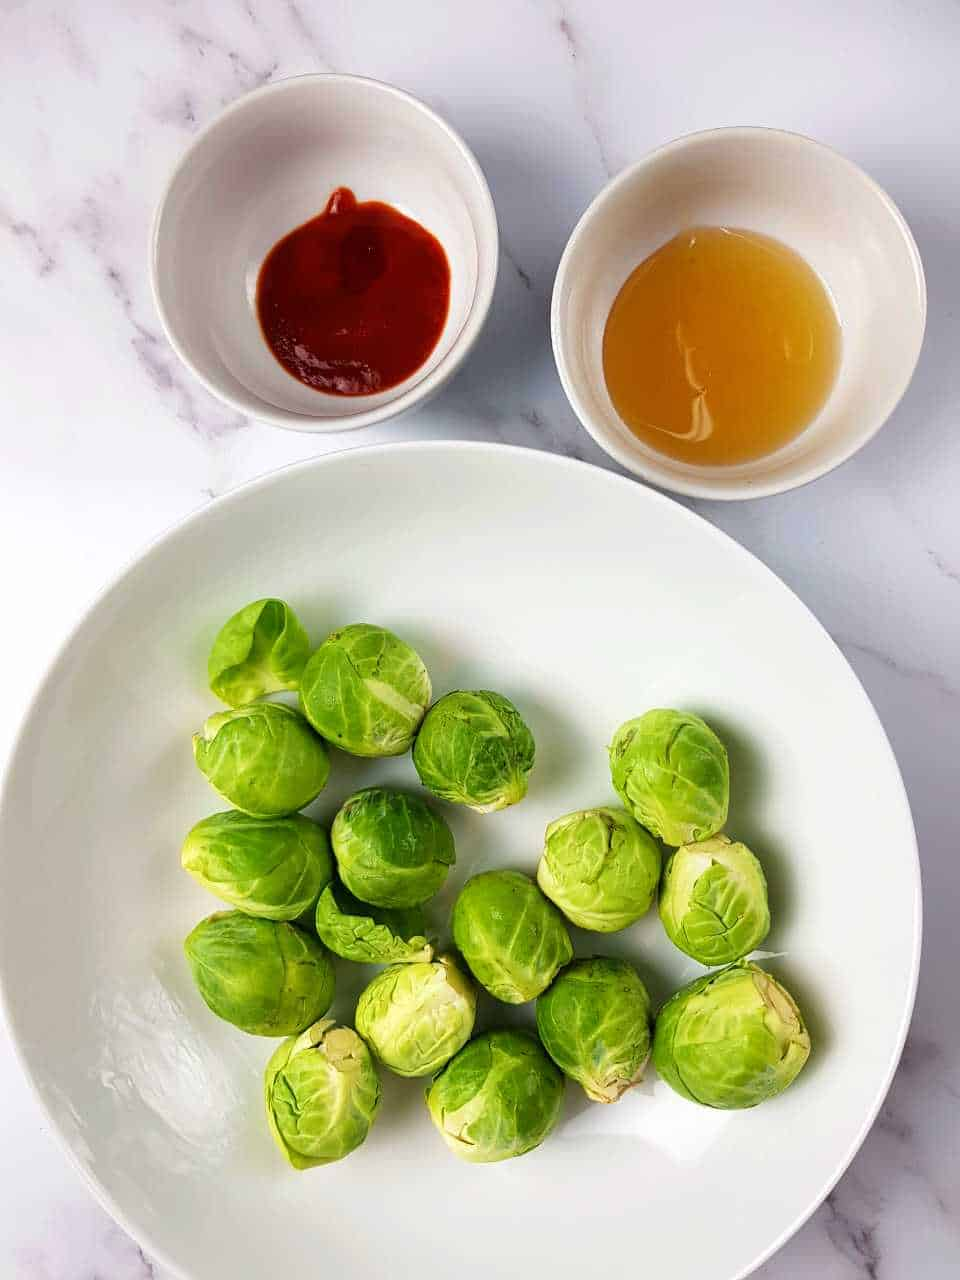 Brussels sprouts on a white plate with bowls of honey and sriracha in the background.